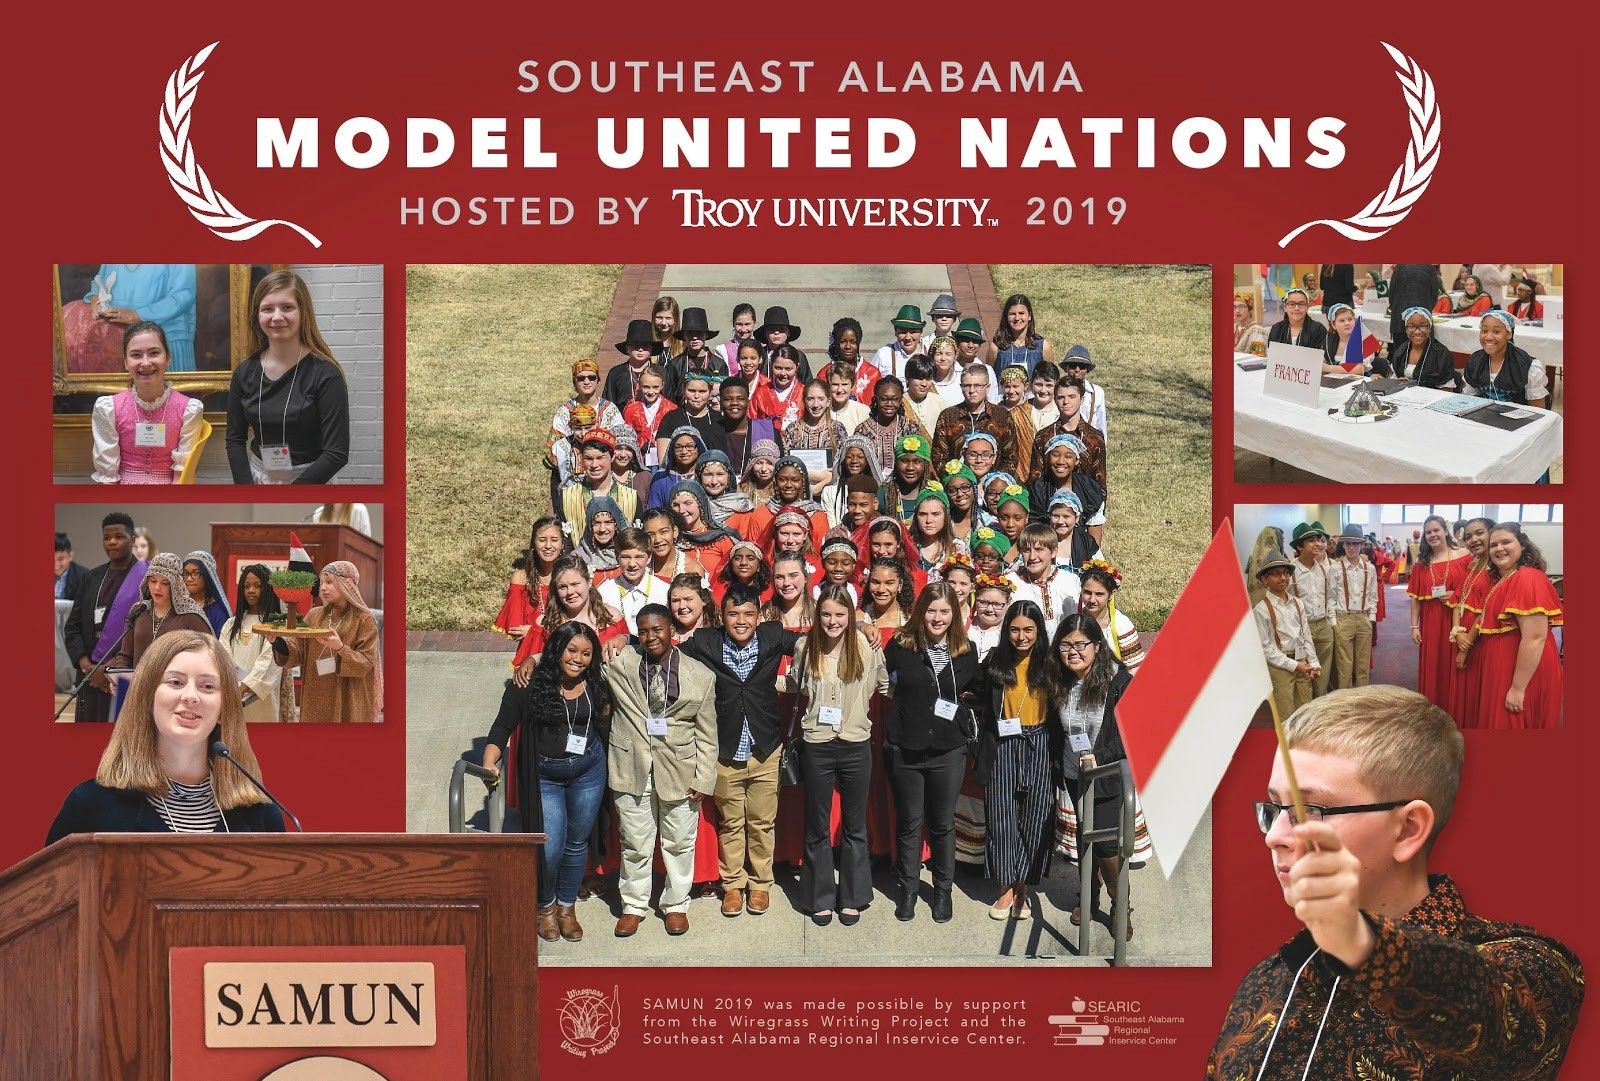 Model United Nations poster